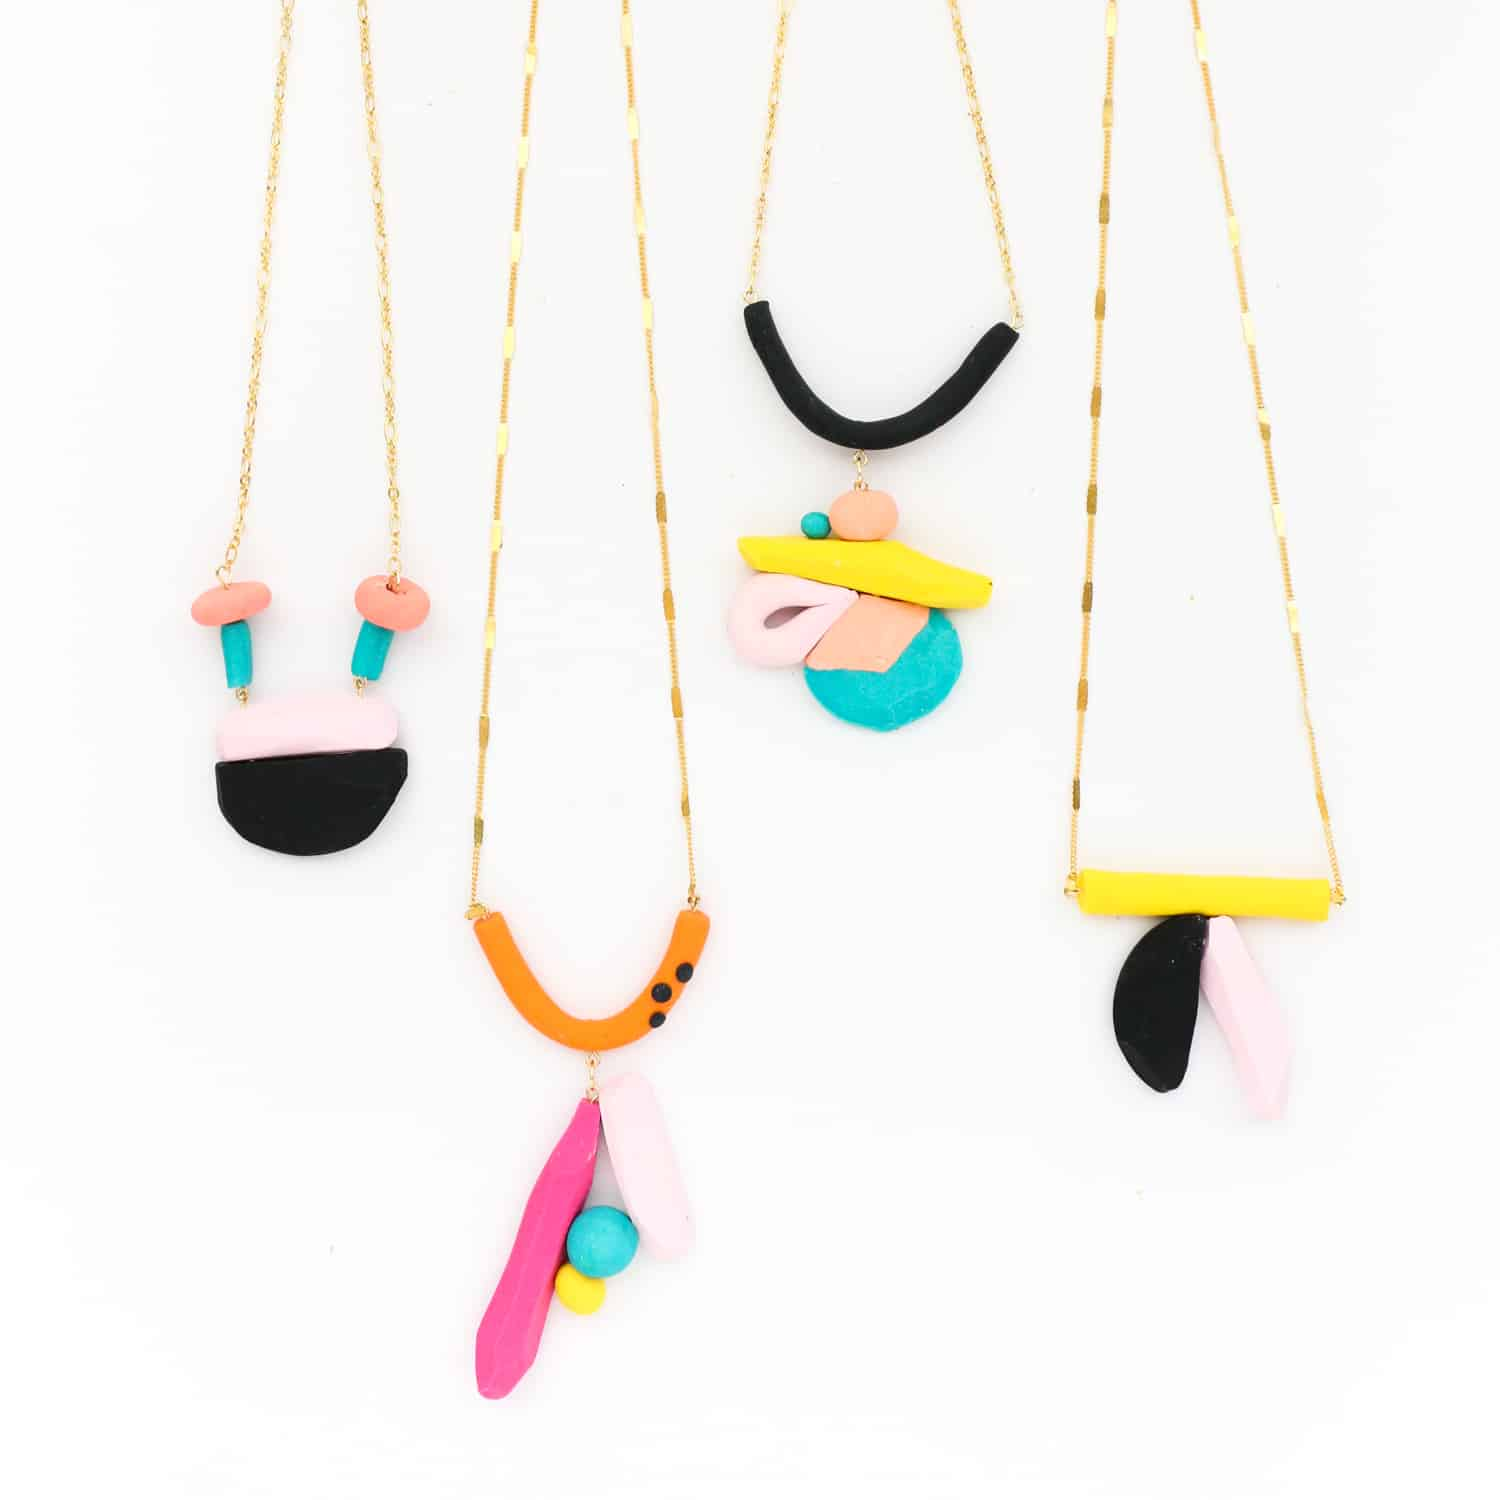 DIY-Colorful-Geometric-Necklaces-click-through-for-tutorial-_-4DIY-Colorful-Geometric-Necklaces-click-through-for-tutorial-_-4